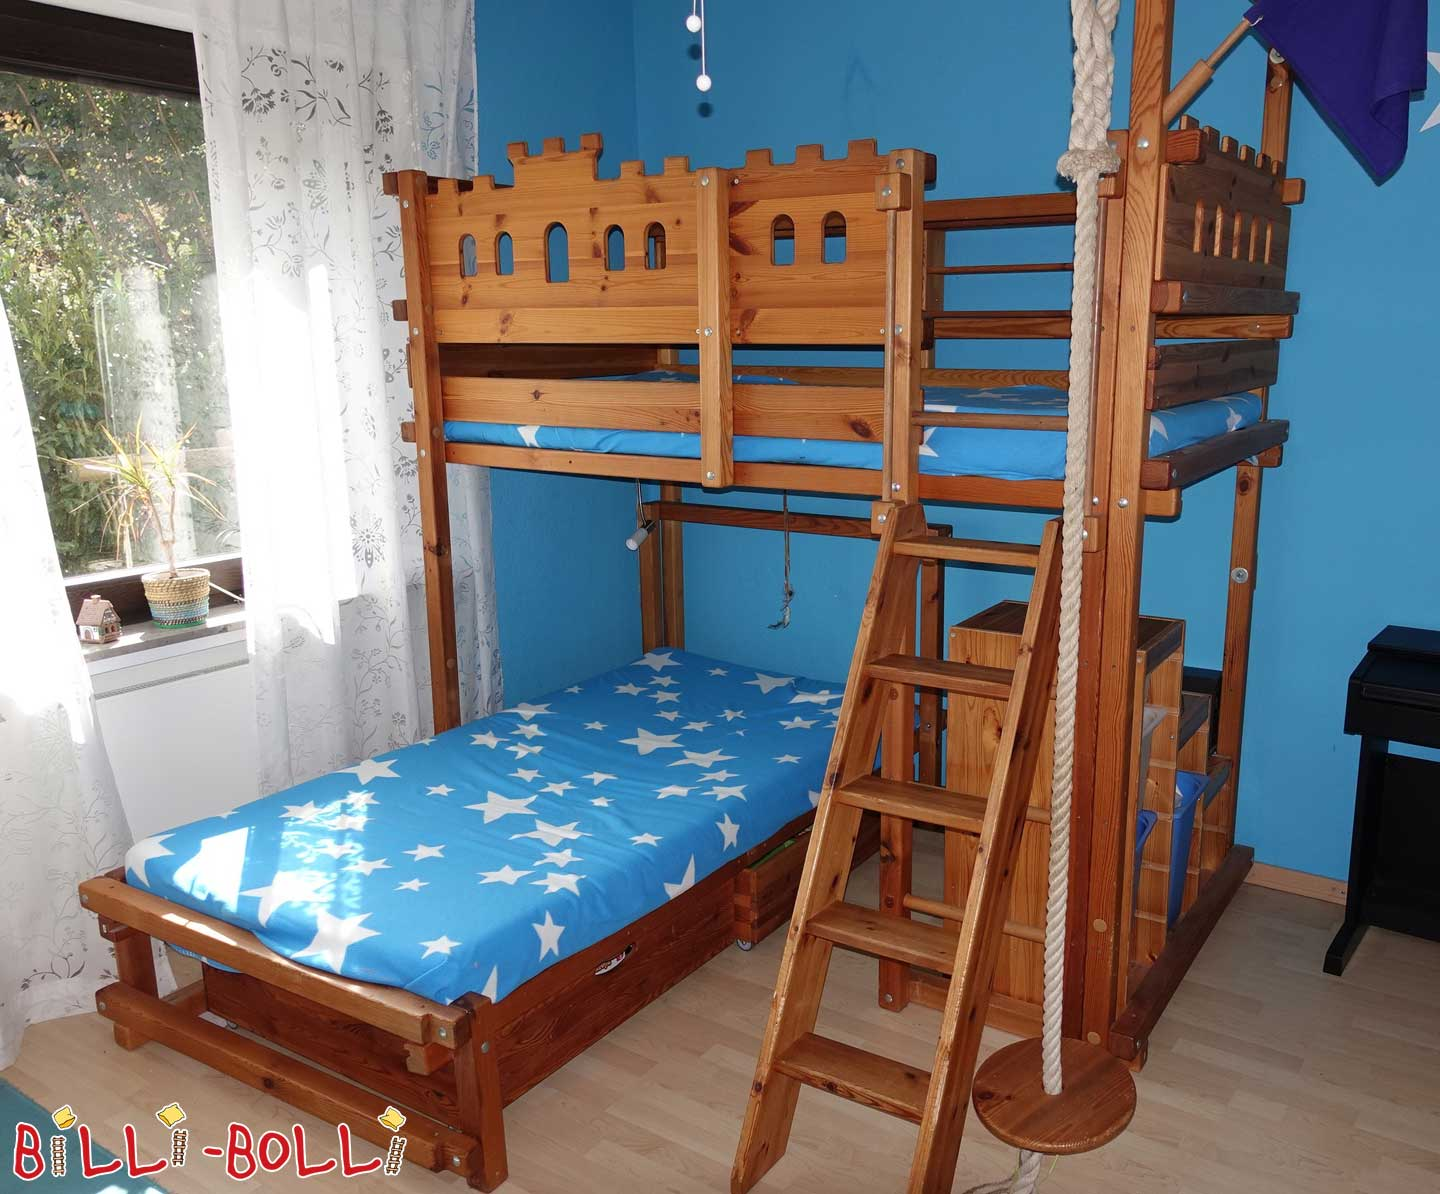 secondhand seite 37 billi bolli kinderm bel. Black Bedroom Furniture Sets. Home Design Ideas